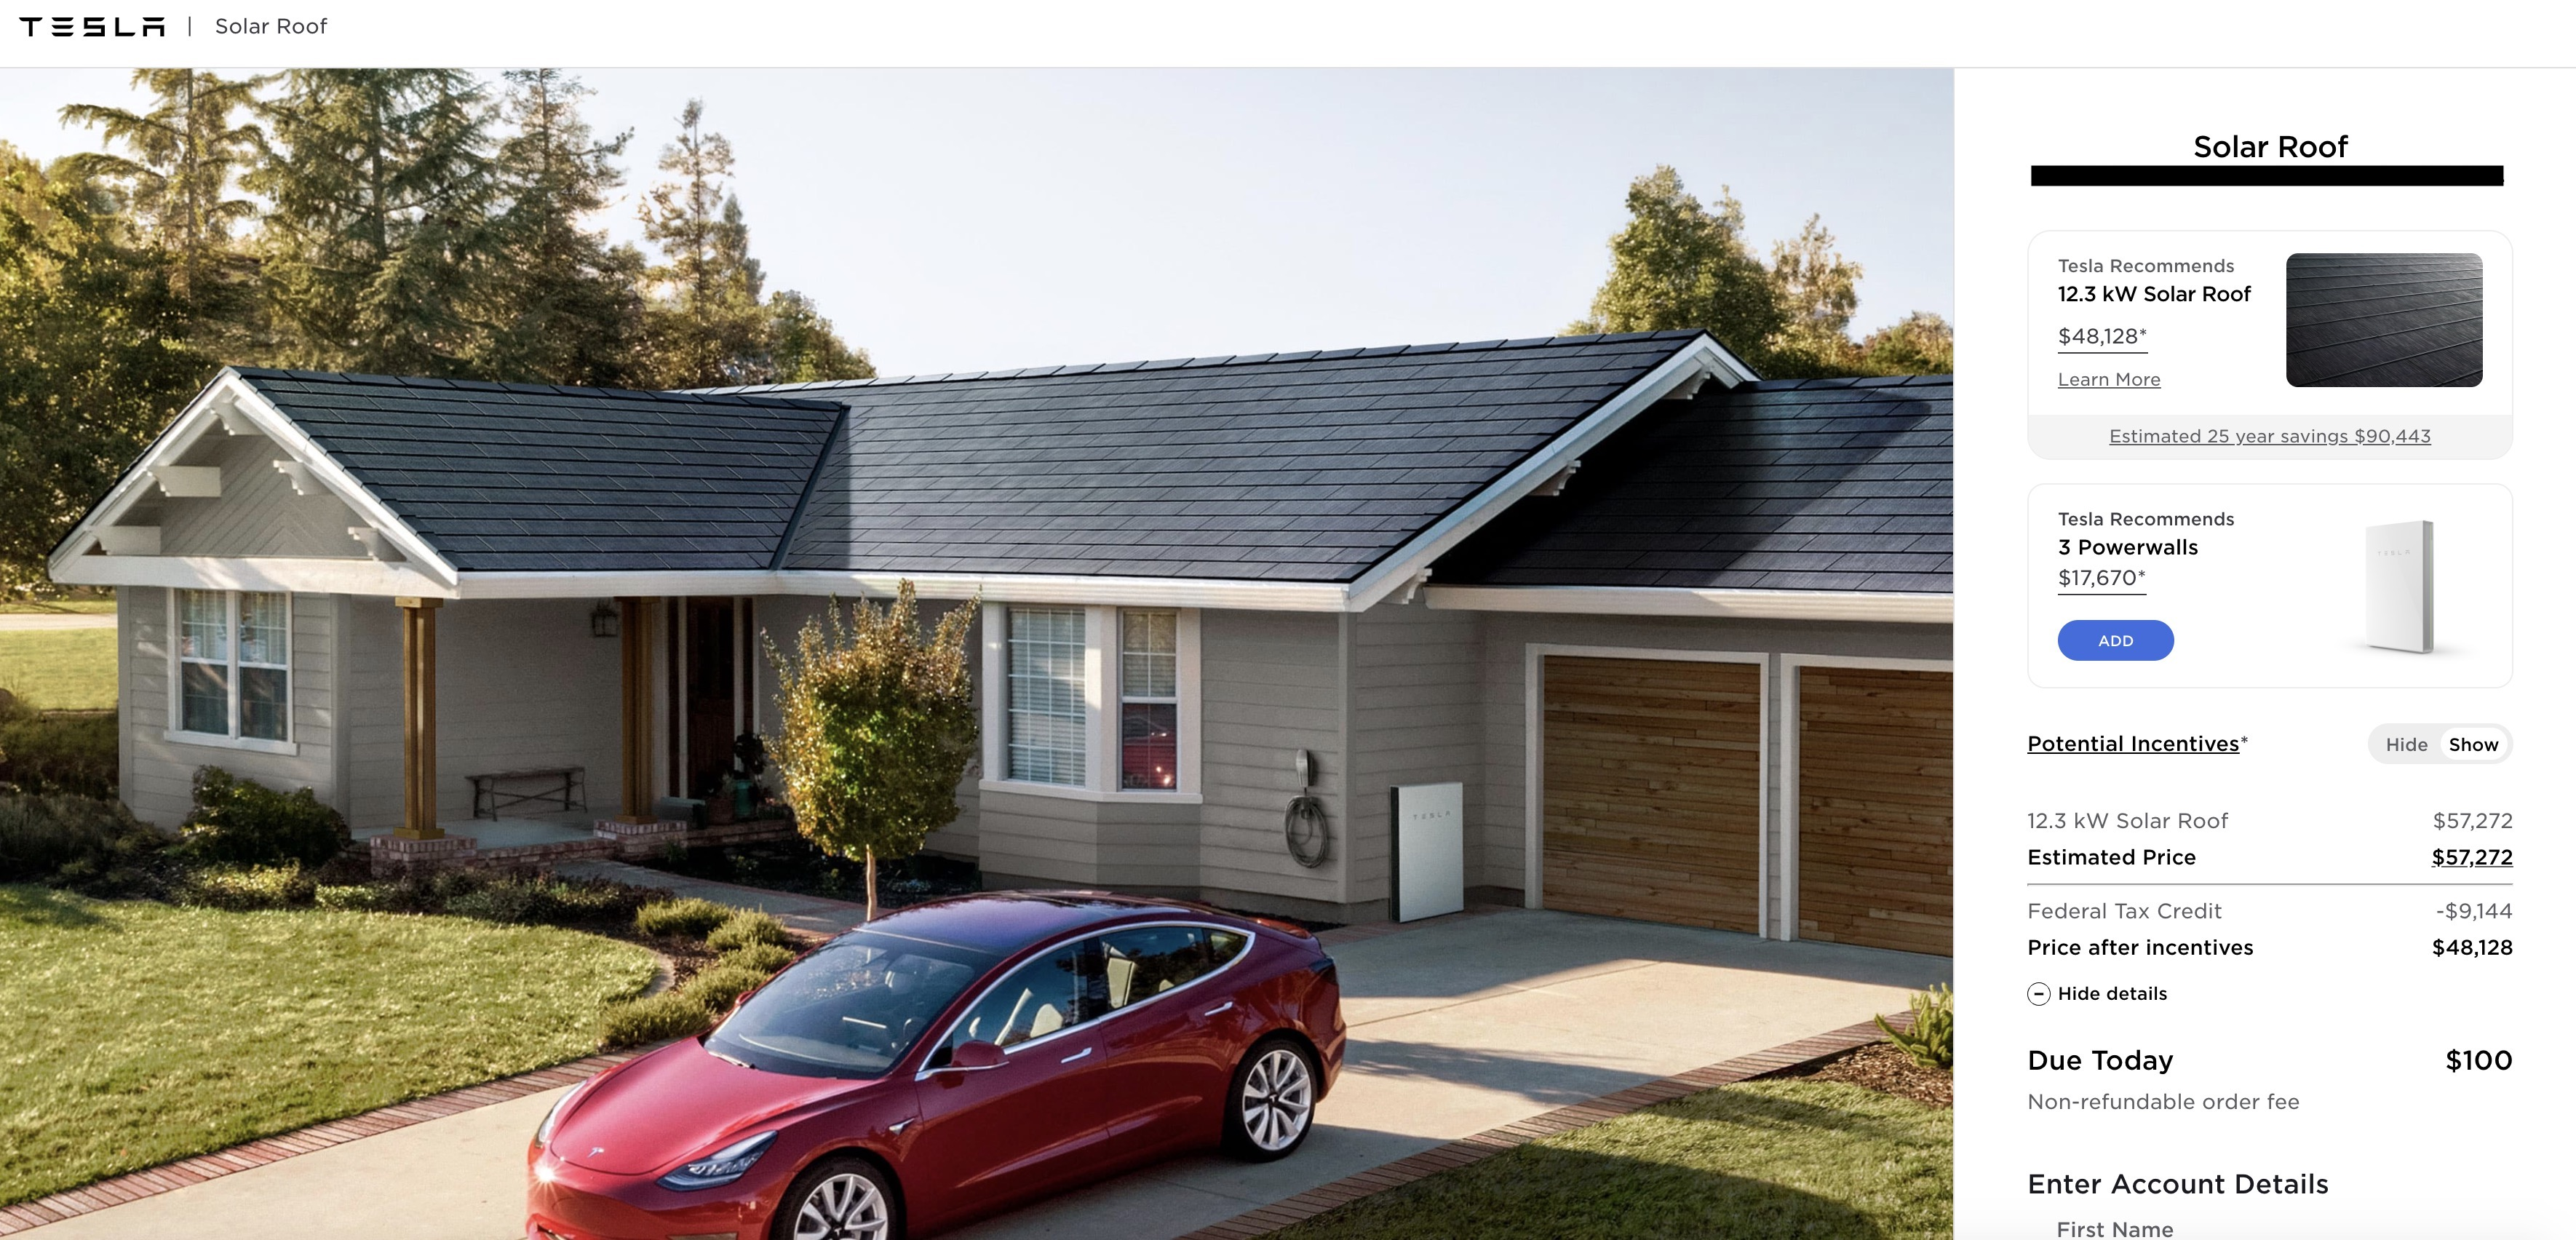 Tesla Solar Panels and Roof: Pricing and how to buy - Electrek